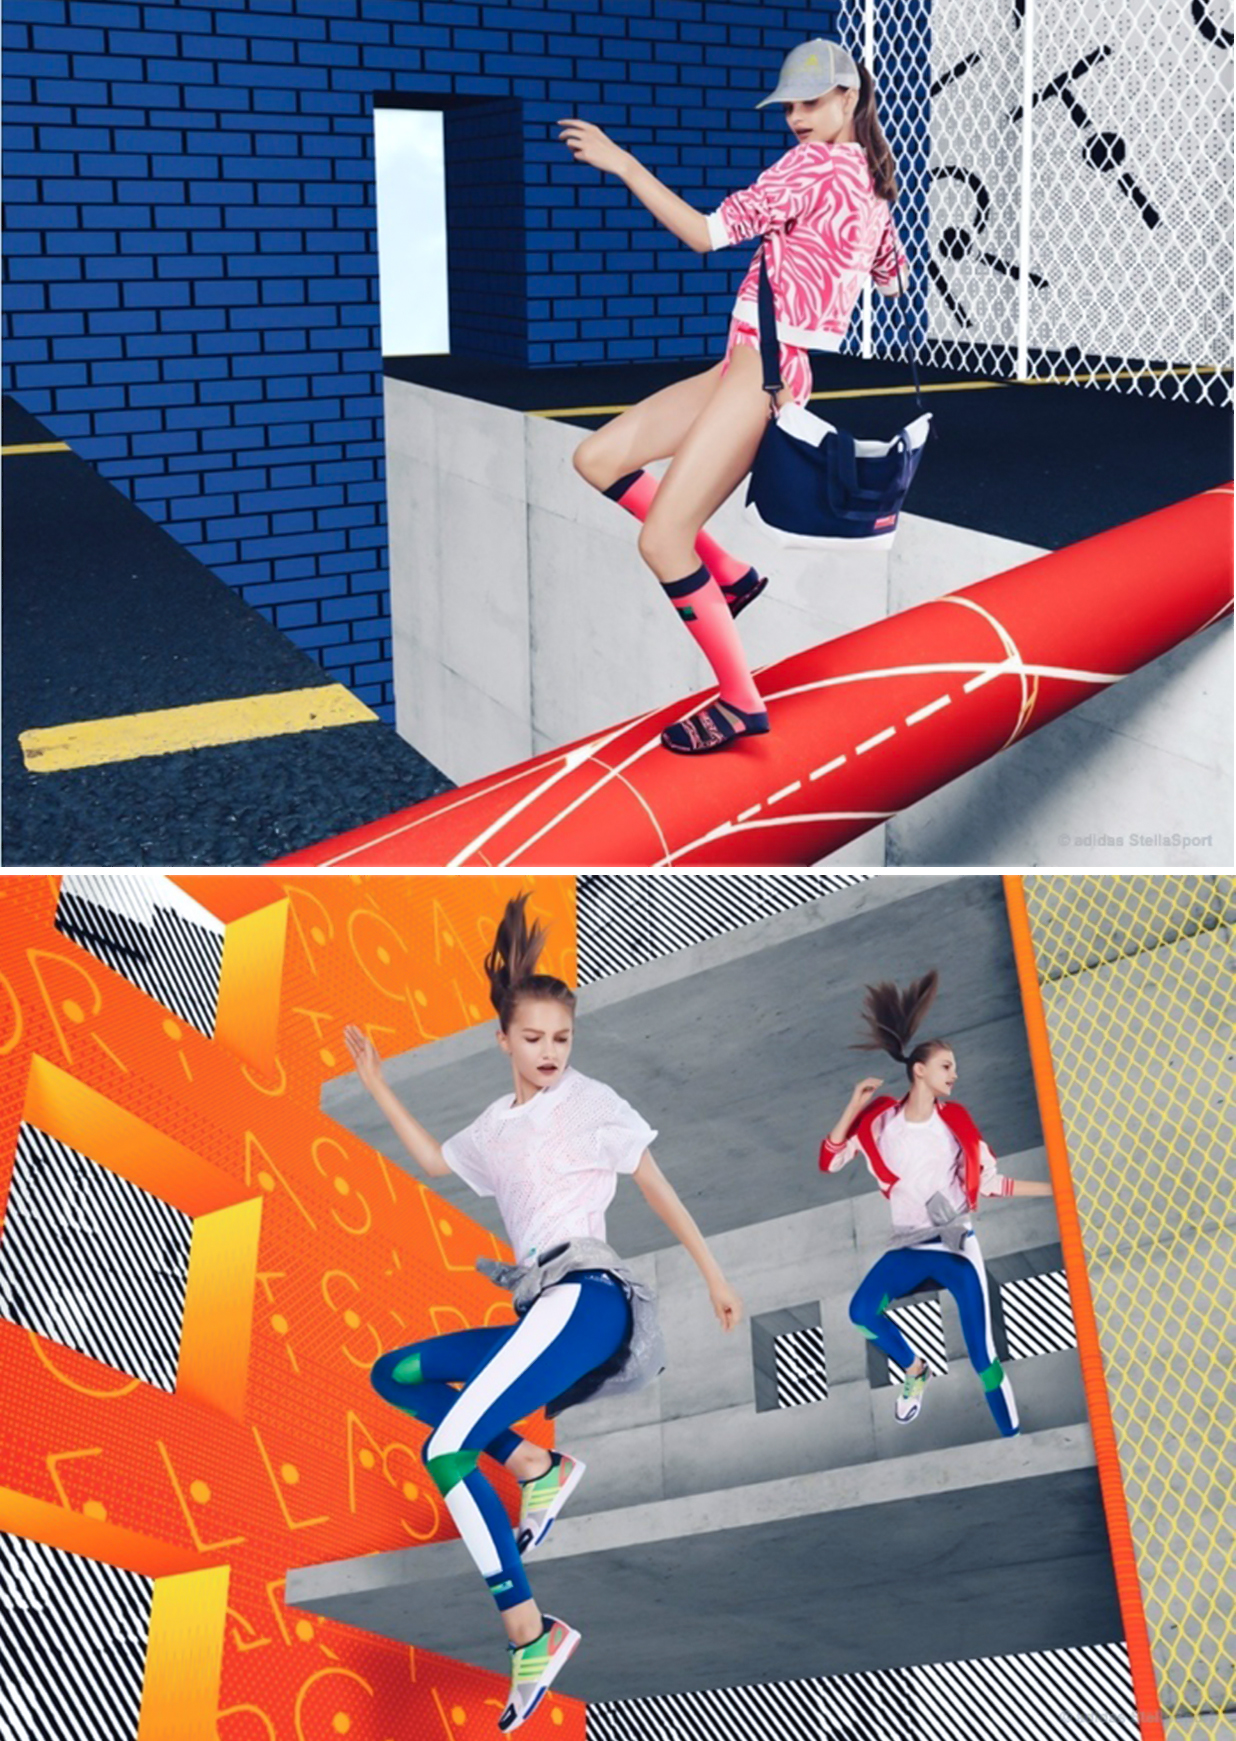 Adeevee Only Selected Creativity Adidas Clothing Actiongirls